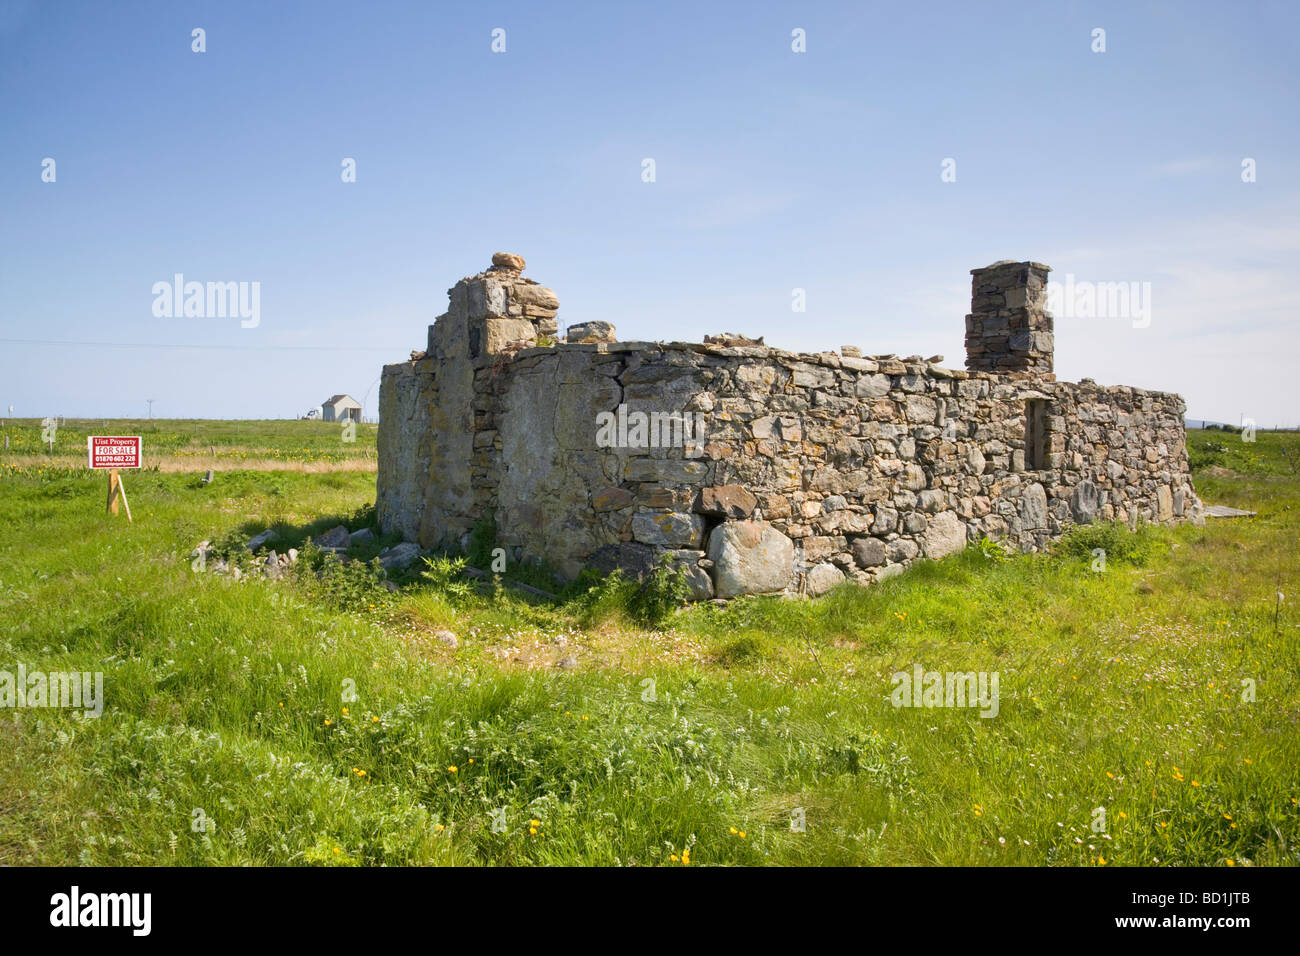 House for sale at Iochdar on the Hebridean island of South Uist, Scotland - Stock Image